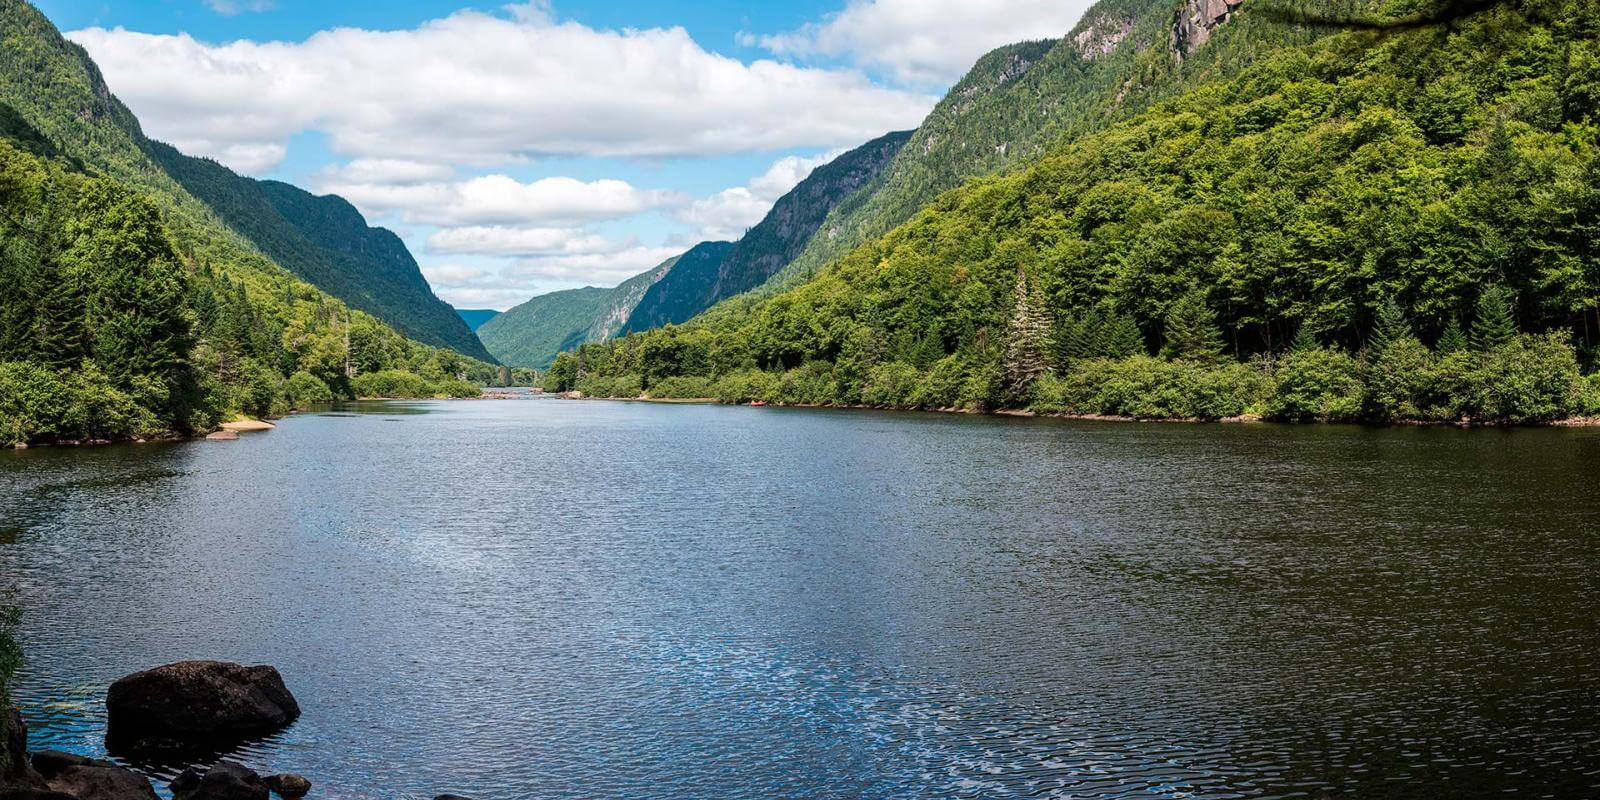 The Jacques-Cartier River, deep in the valley, in Jacques-Cartier National Park.